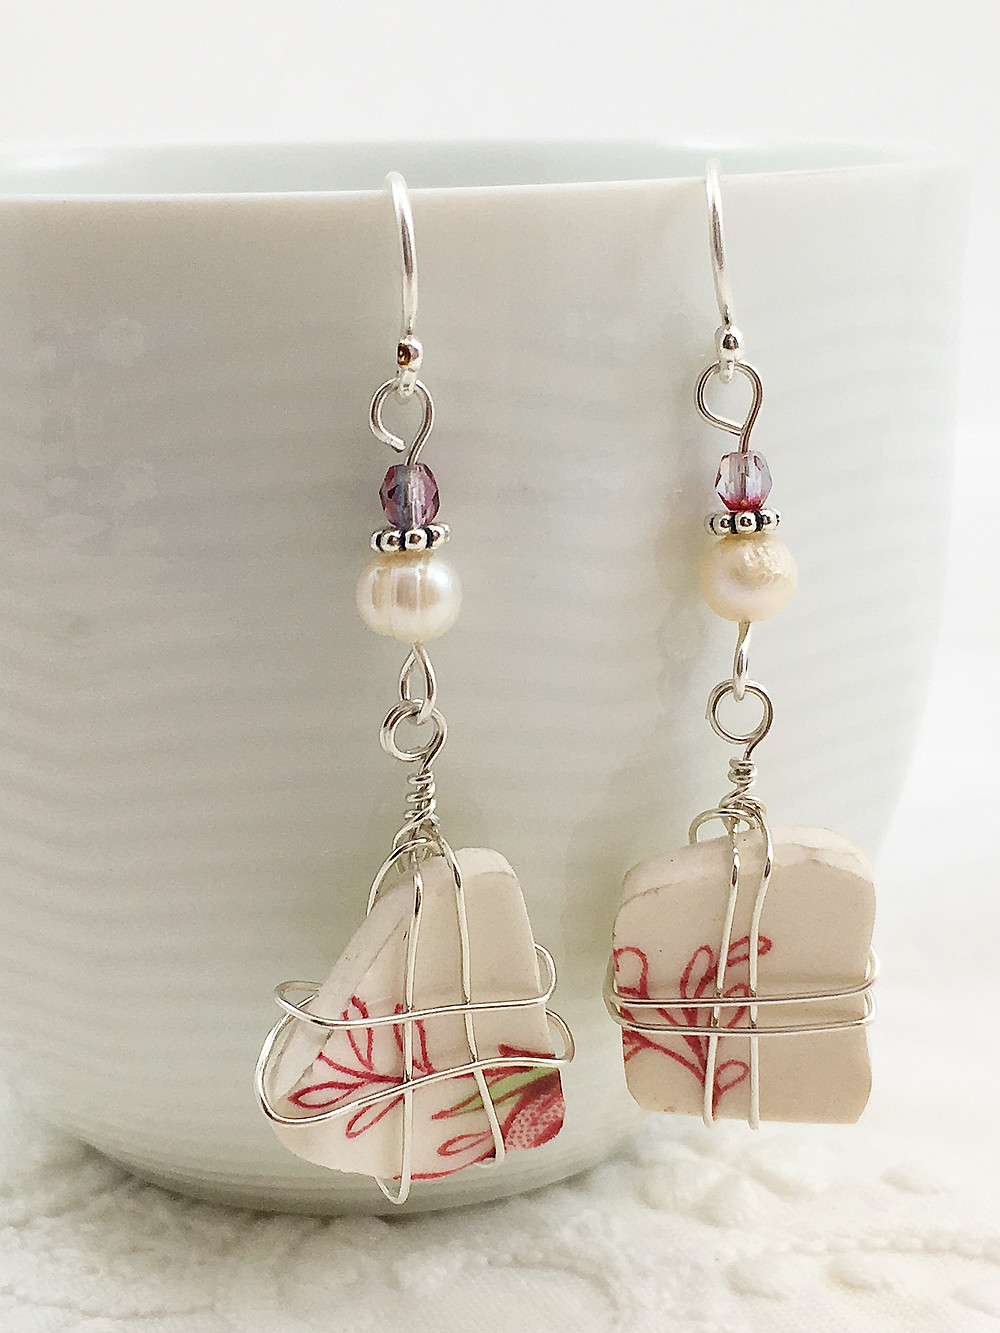 upcycled broken china jewelry earrings